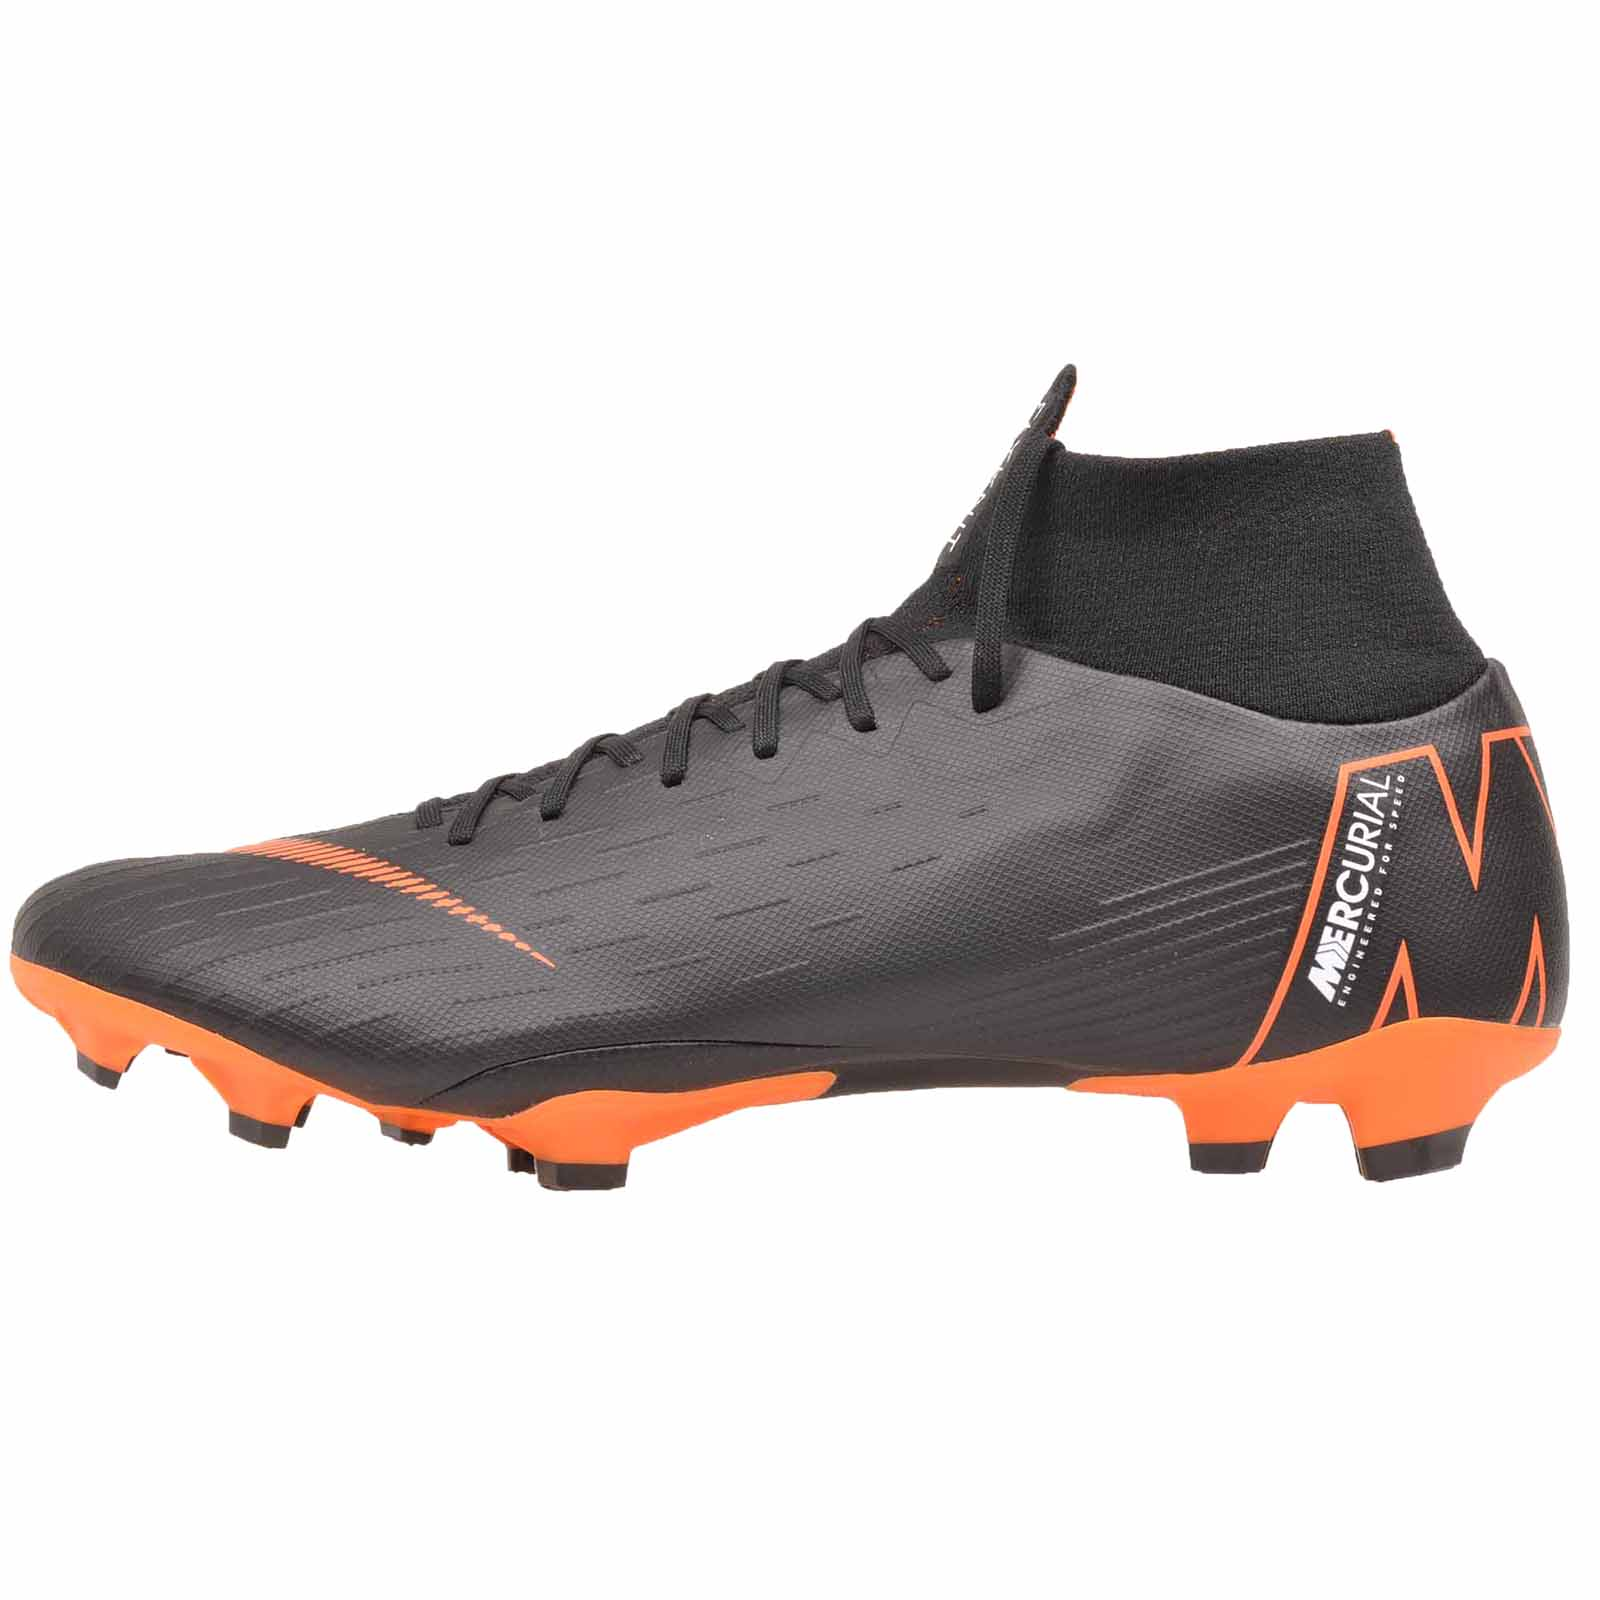 premium selection ed114 1a77c nike mercurial superfly vi pro ag propara caballeros zapatos de fútbol  cleats sneakers for cheap 9c2d7 4a642